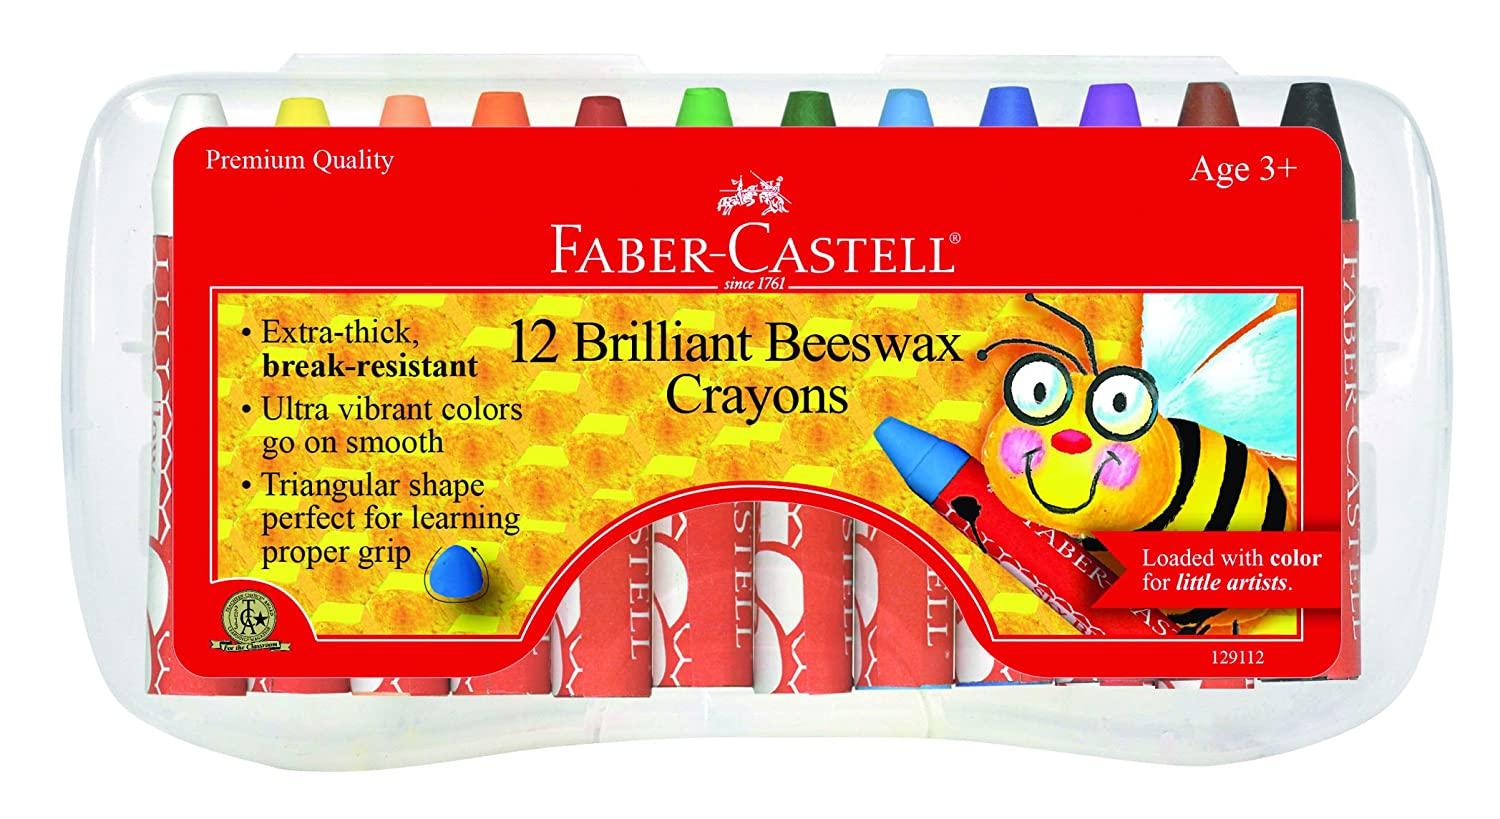 Faber-Castell Beeswax Crayons in Durable Storage Case, 12 Vibrant Colors Faber Castell 129112